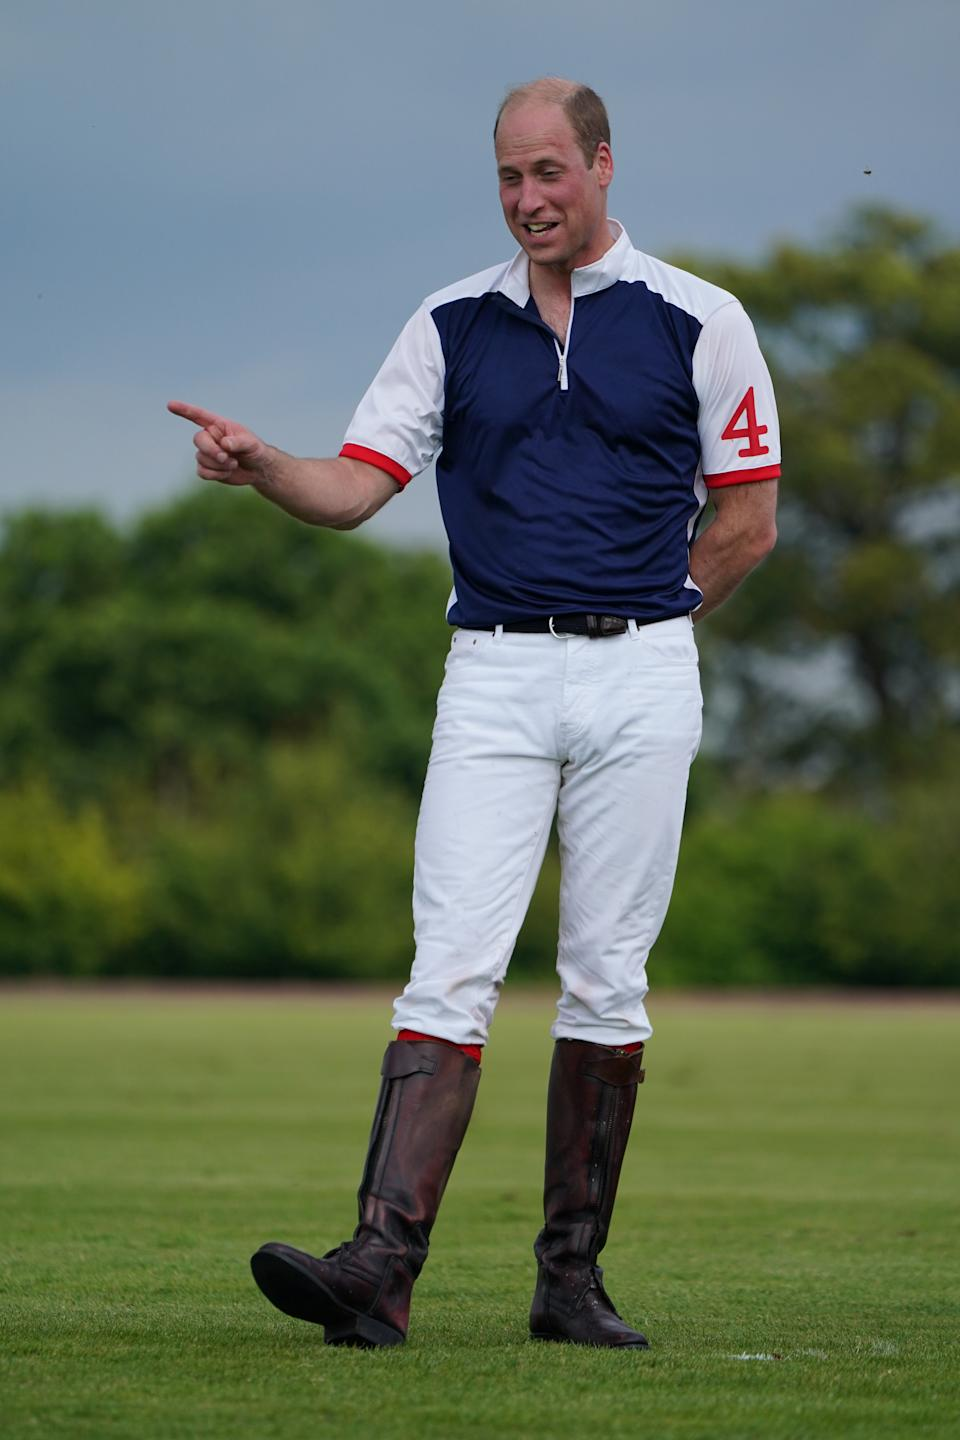 The Duke of Cambridge after taking part in the Out-Sourcing Inc Royal Charity Polo Cup 2021 at Guards Polo Club, Windsor, which will help raise funds and awareness for charities supported by the Duke and Duchess of Cambridge. Picture date: Friday July 9, 2021.